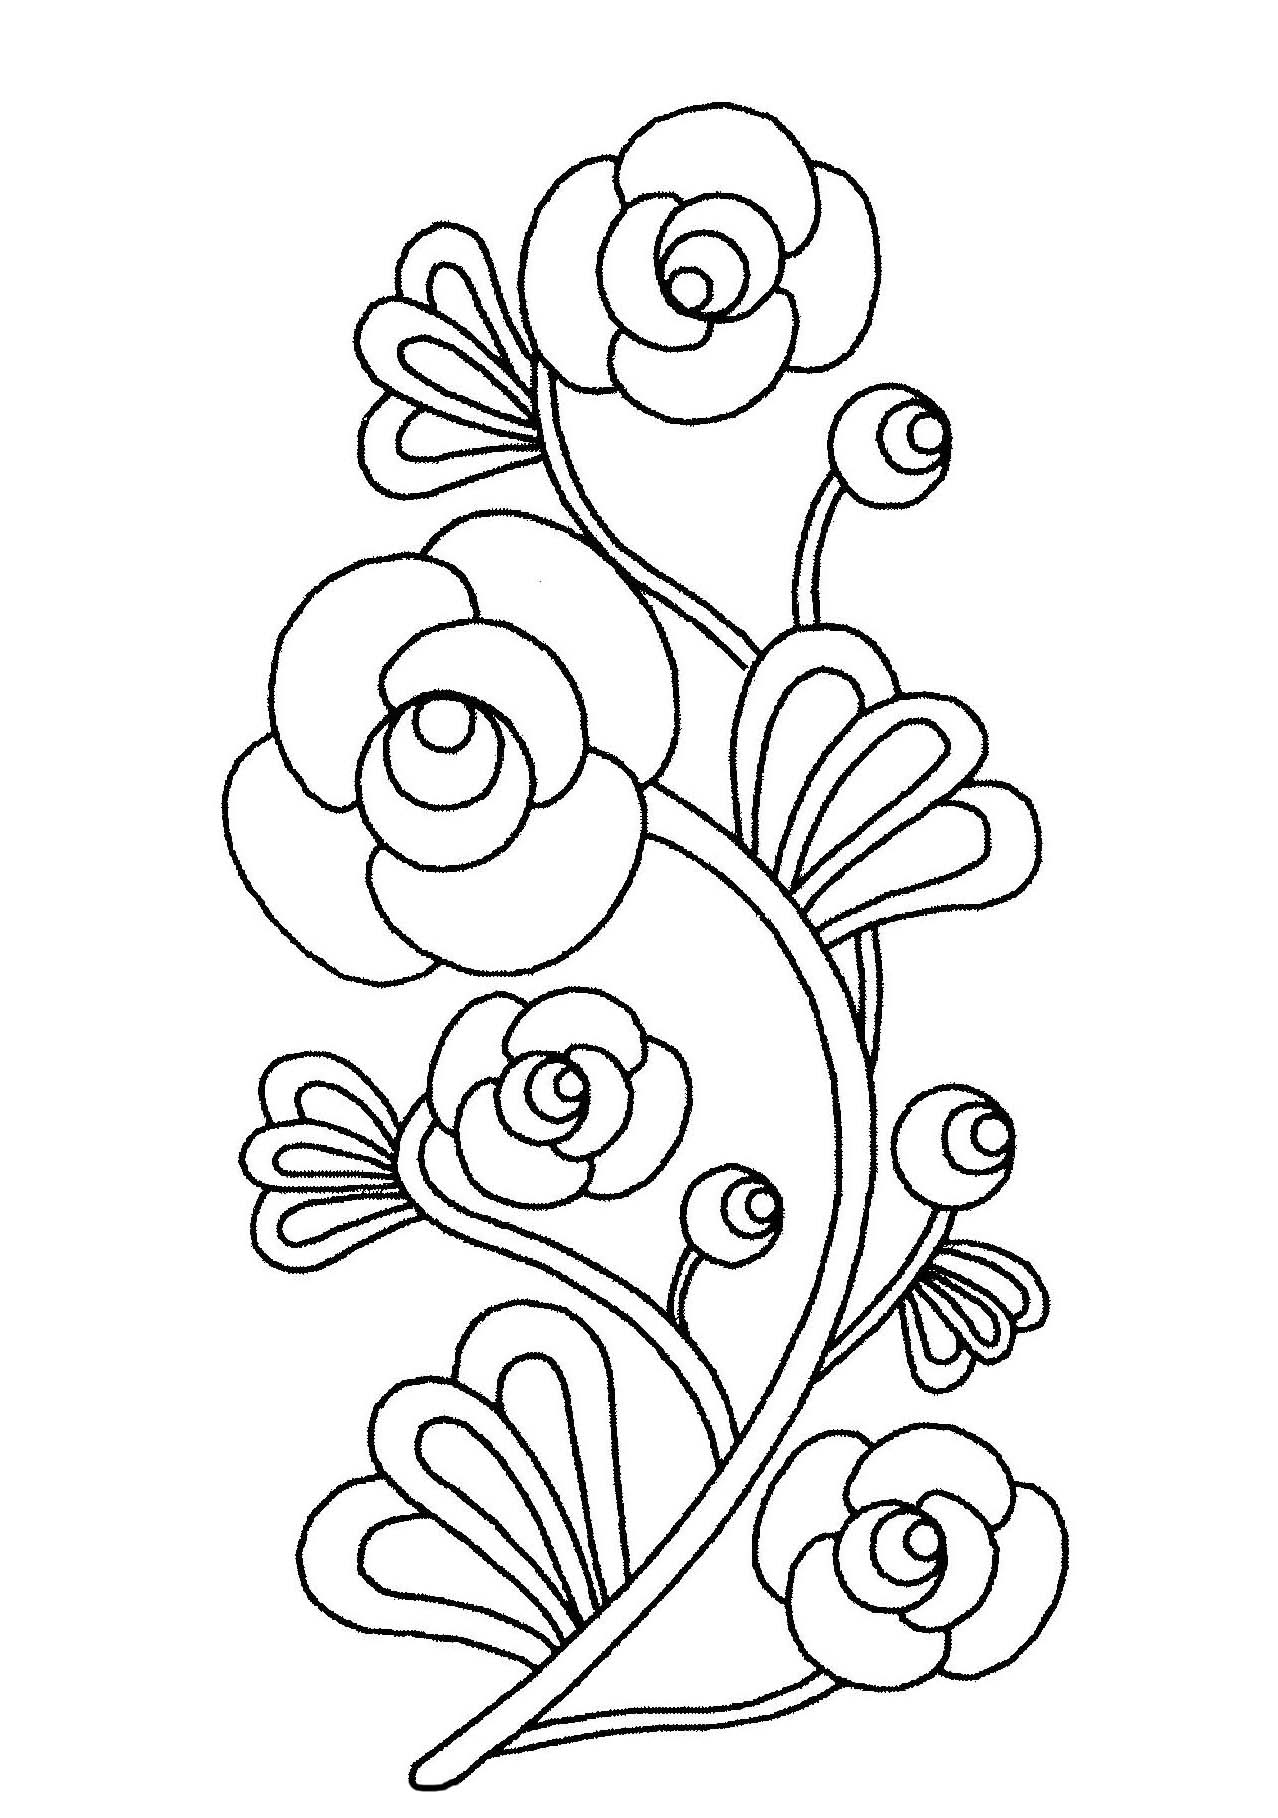 childrens coloring pages flowers bouquet of flowers coloring pages for childrens printable pages childrens flowers coloring